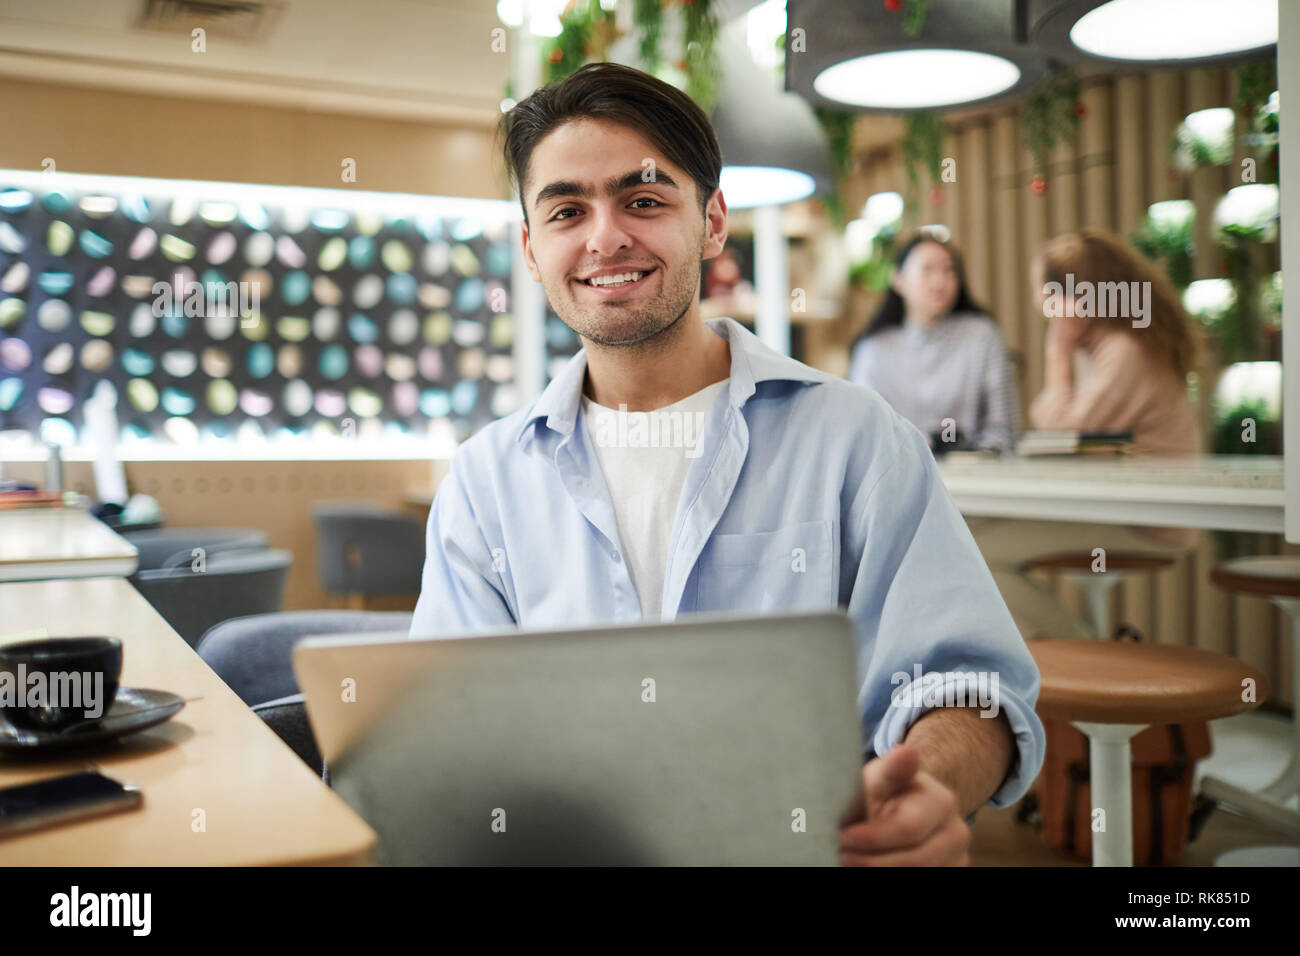 Student with laptop - Stock Image